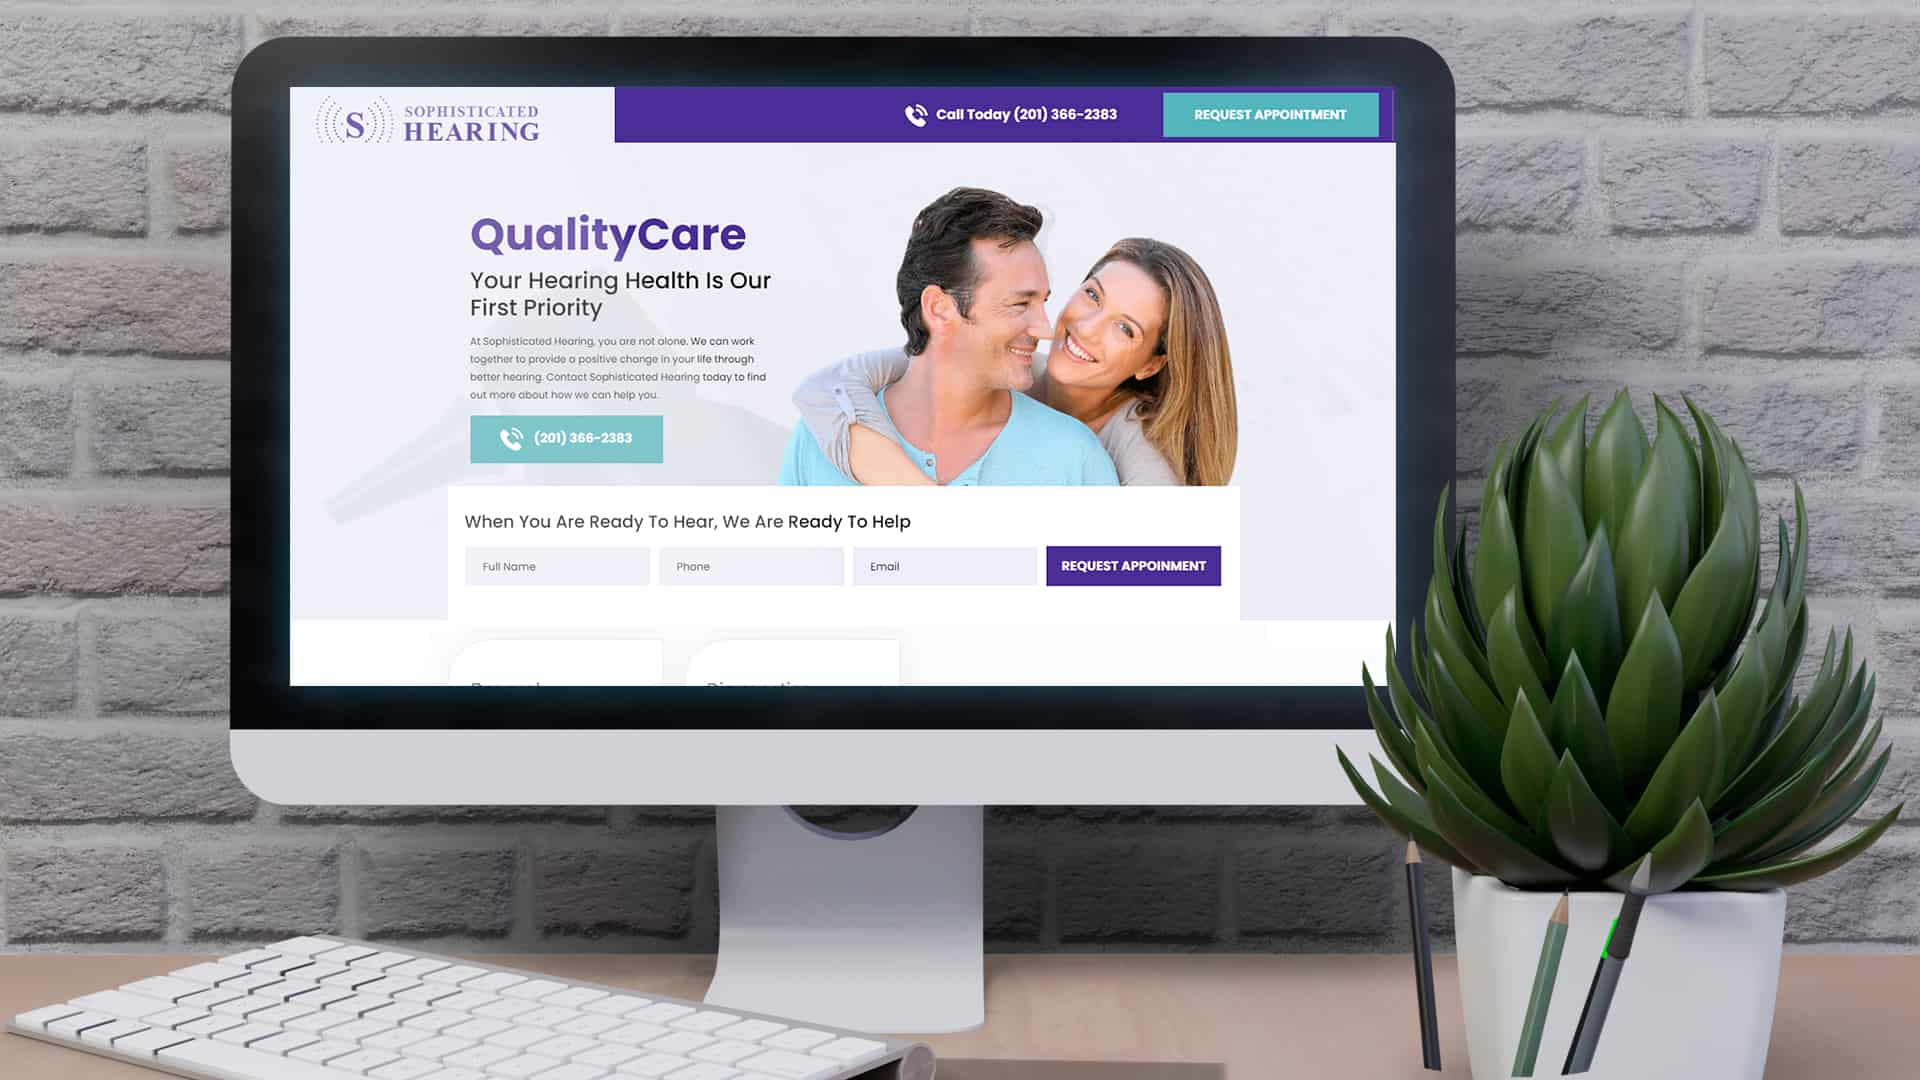 SEO & PPC Medical & Healthcare: Sophisticated Hearing QualityCare, in Desktop